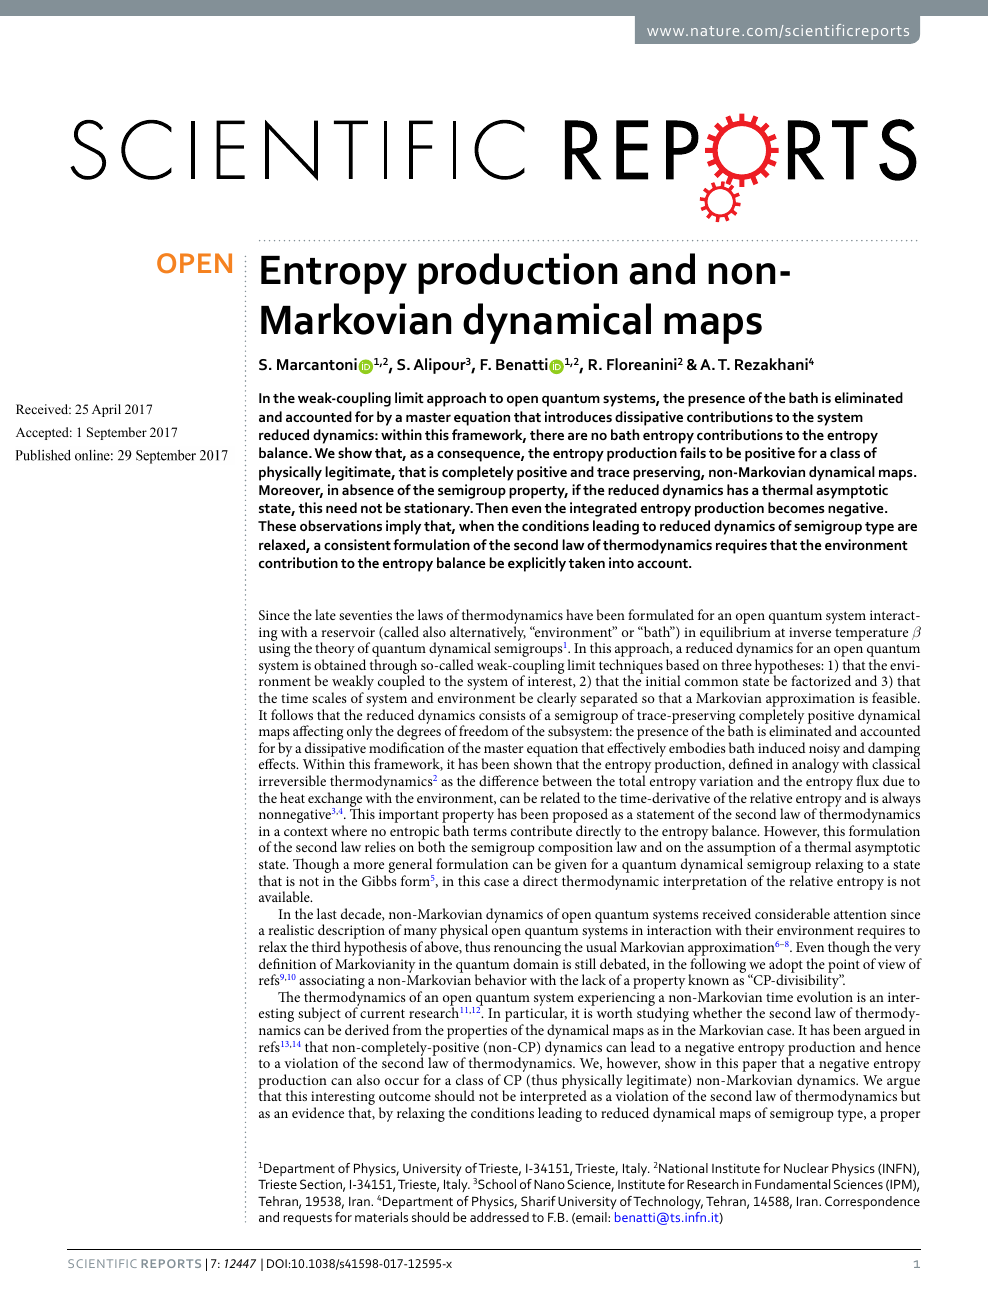 Entropy production and non-Markovian dynamical maps – topic